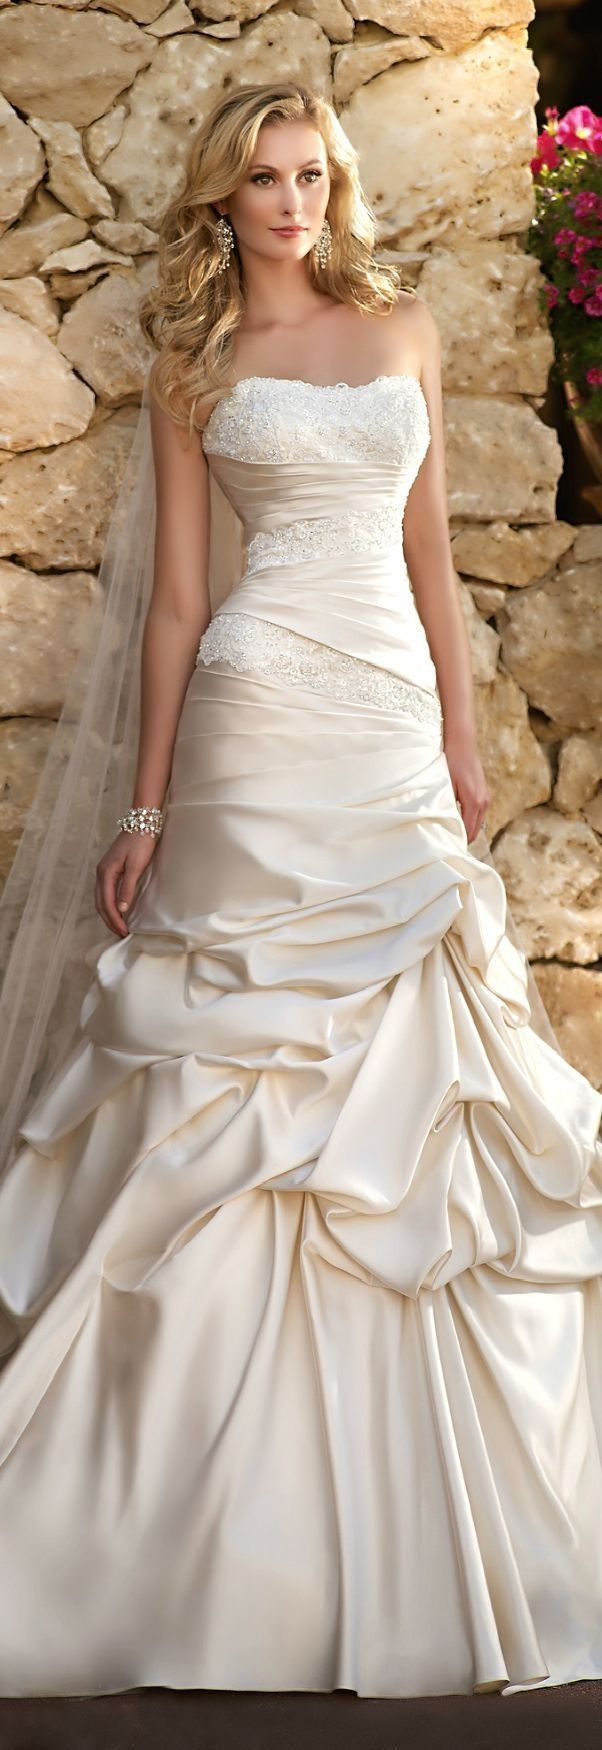 The 25 best strapless wedding dresses ideas on pinterest for Custom made wedding dresses dallas